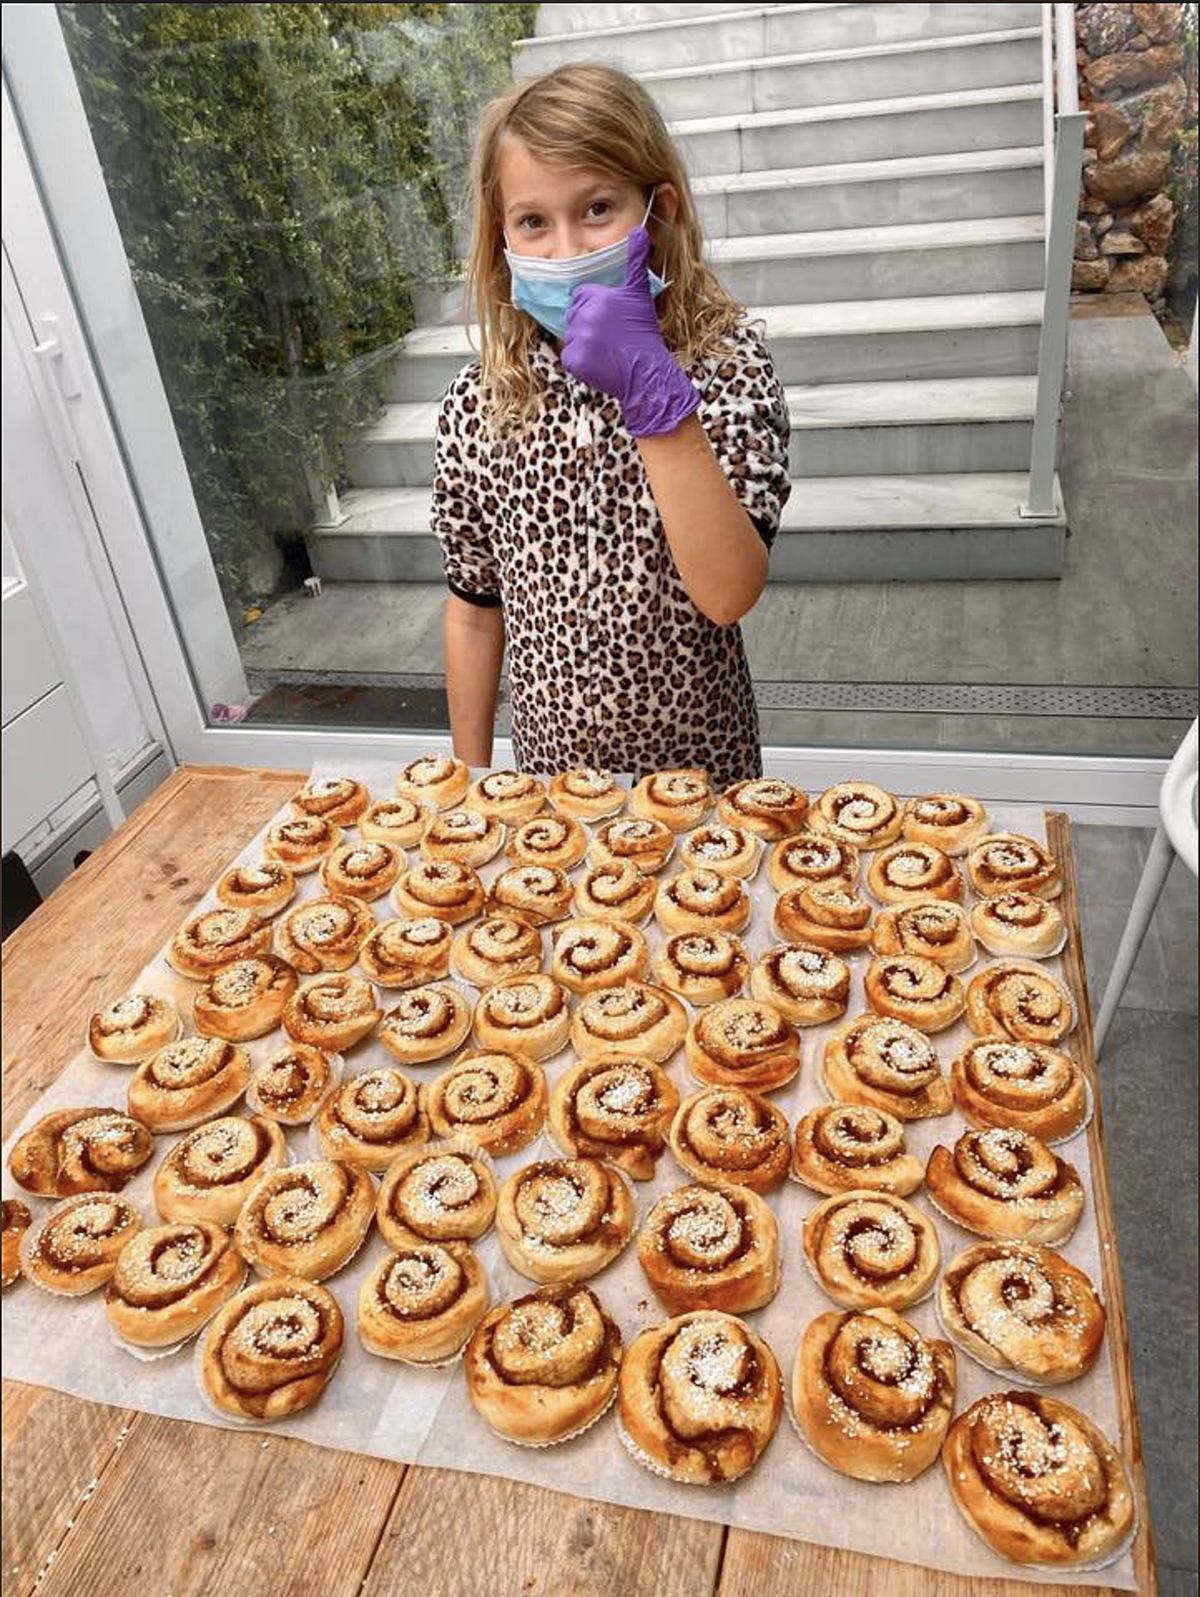 Marbella teenagers bake hundreds of cakes for medical staff, the elderly and the homeless